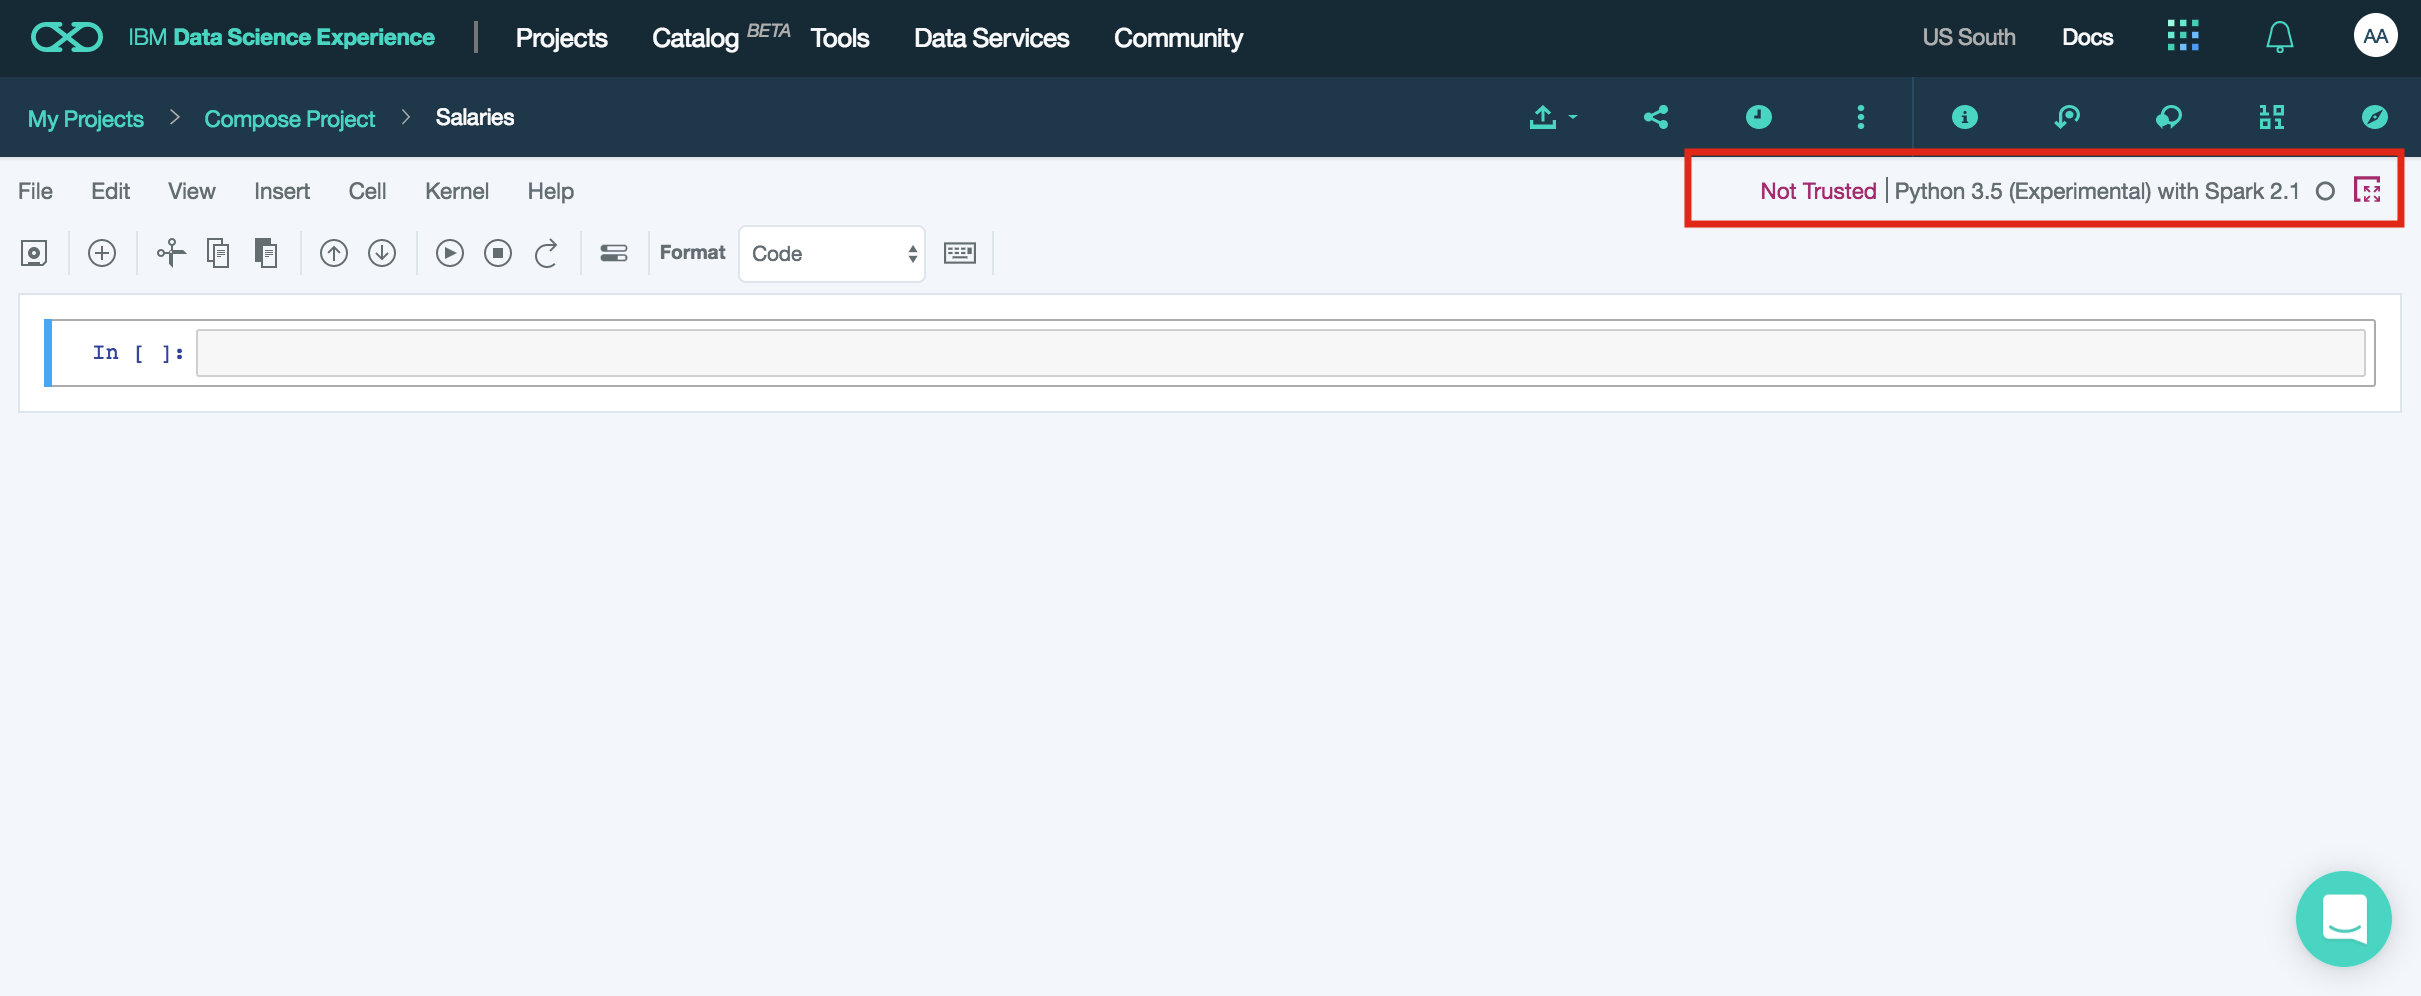 Securing Notebooks on IBM's Data Science Experience